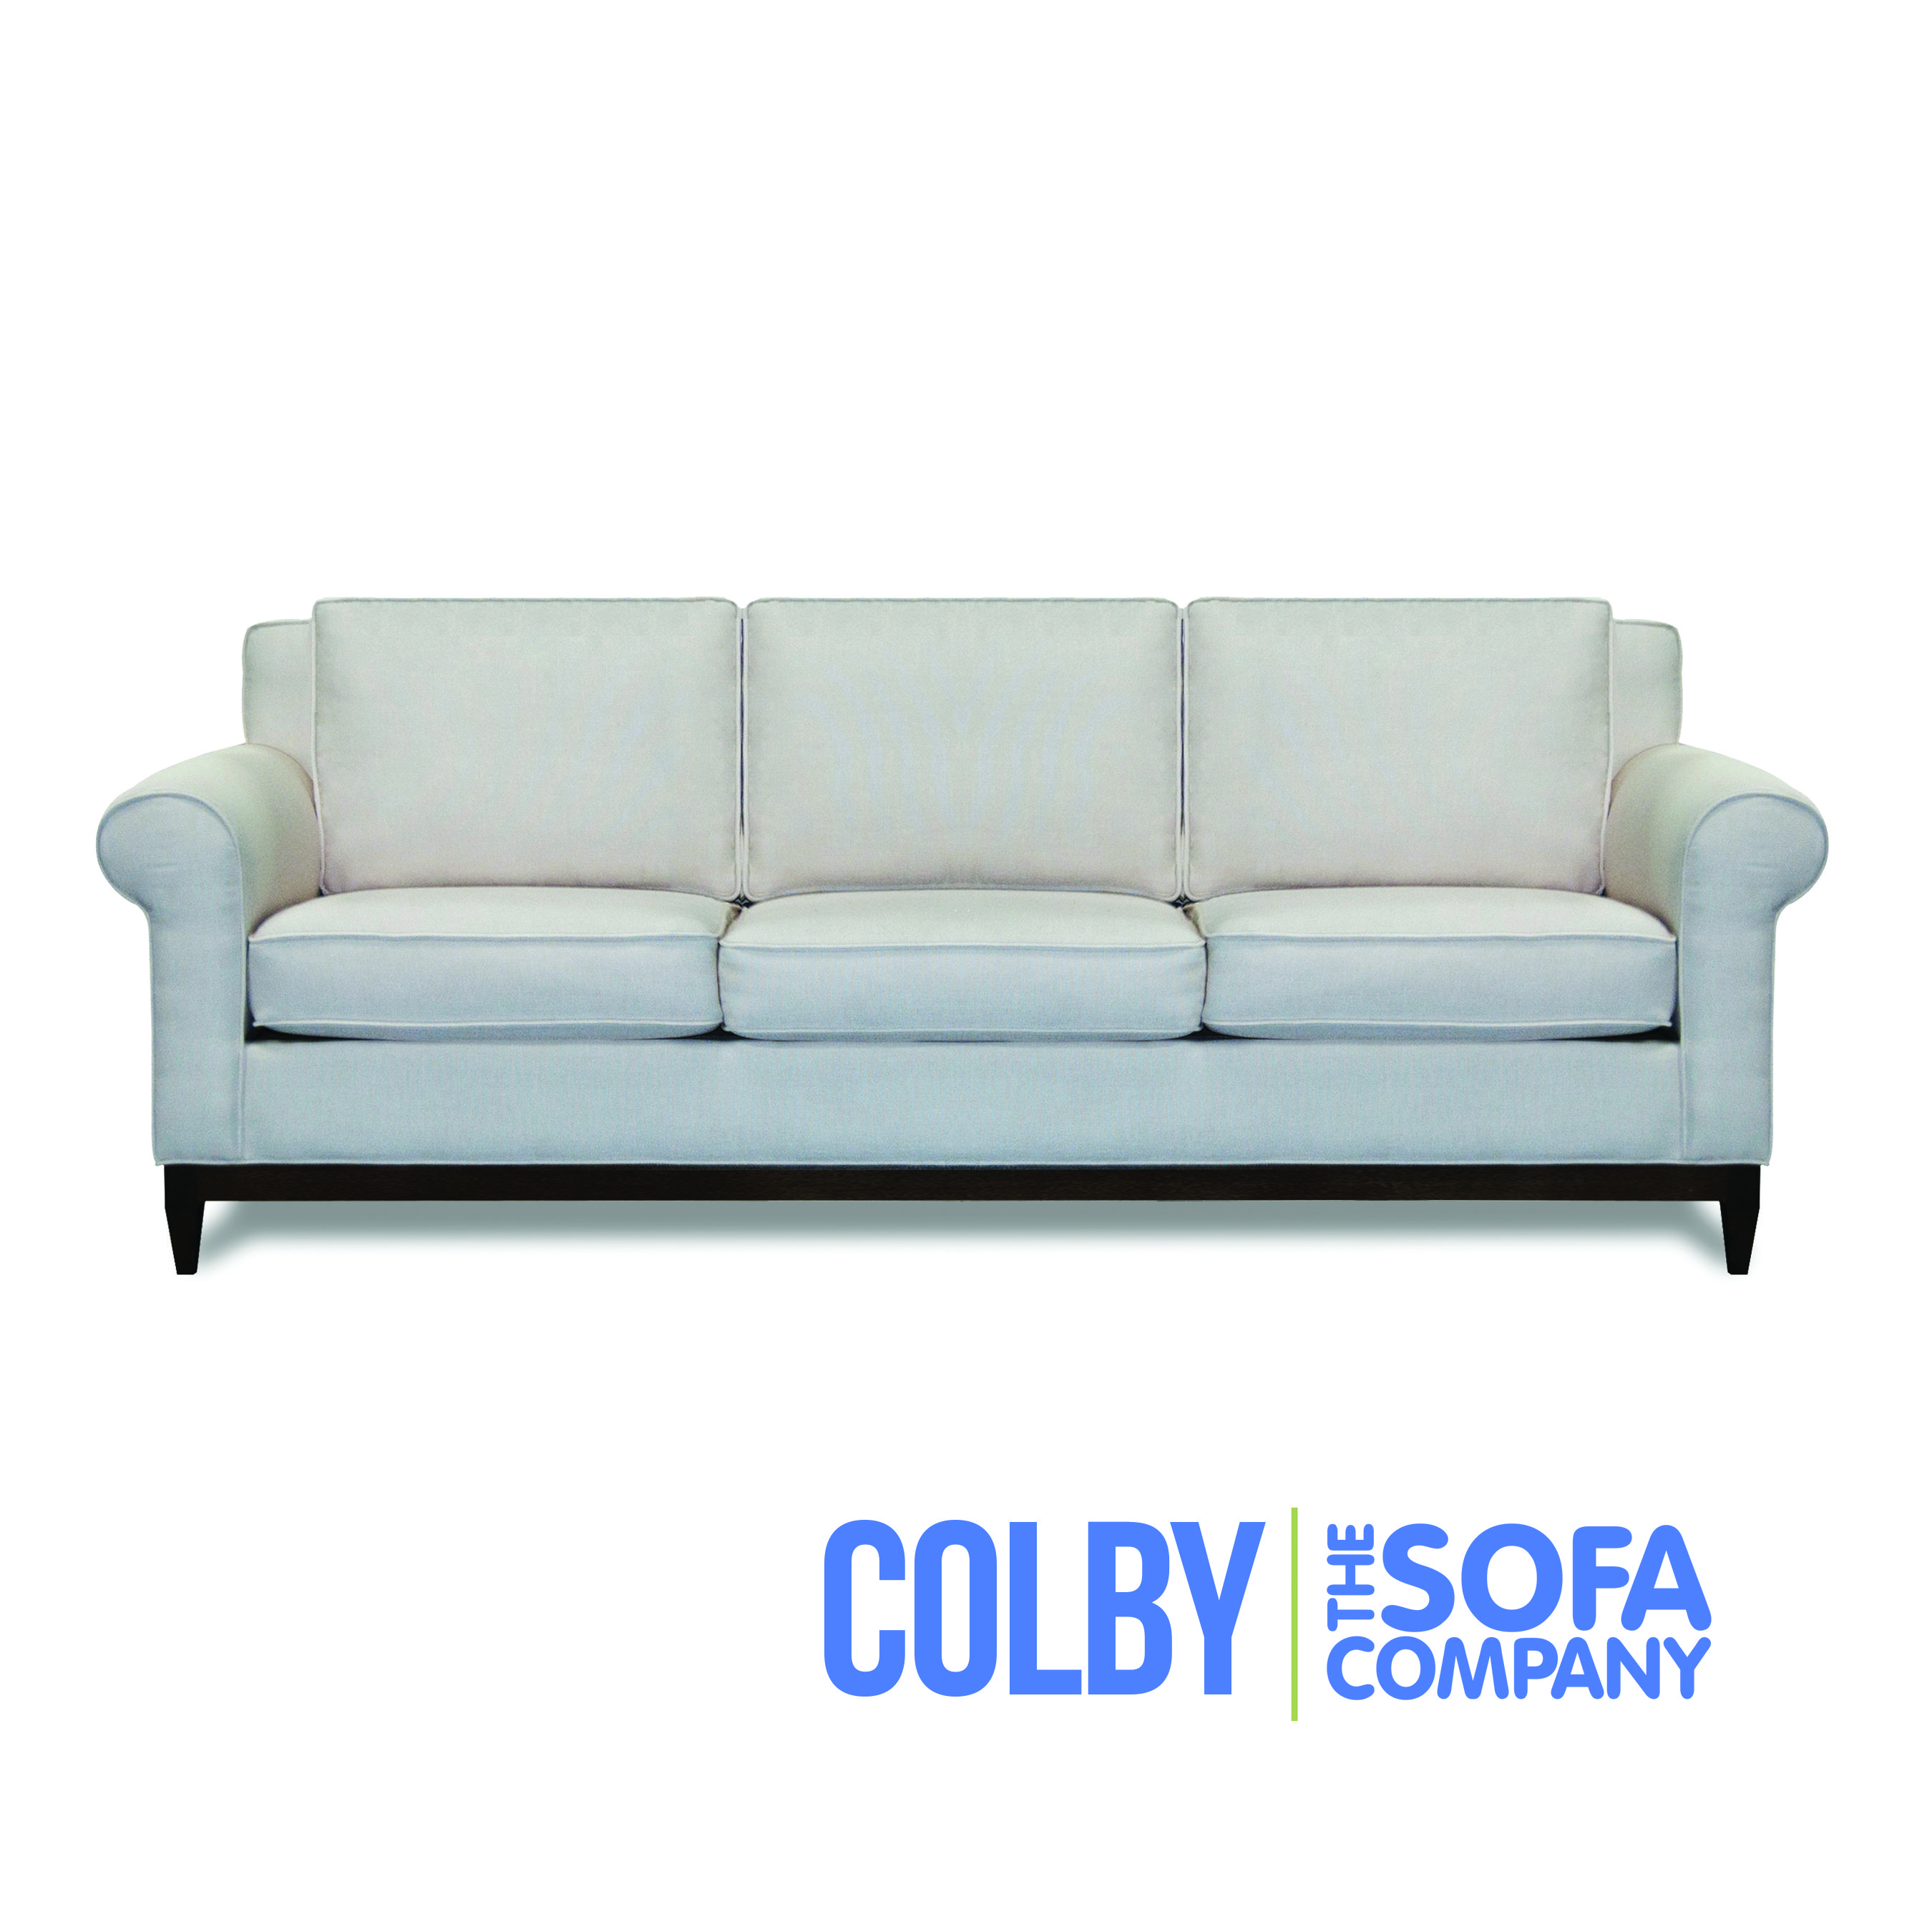 Colby Style By The Sofa Company Www Thesofaco